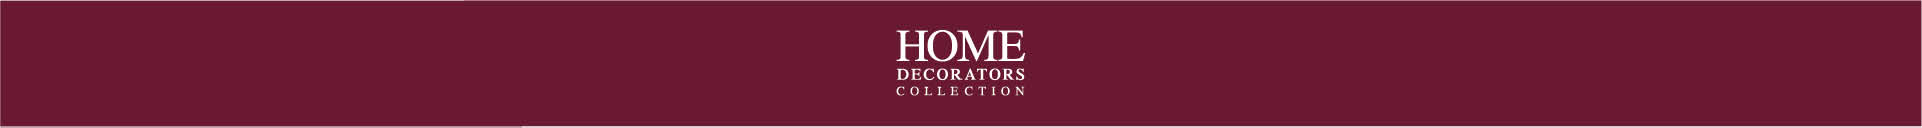 Home Decorator's Collection logo banner